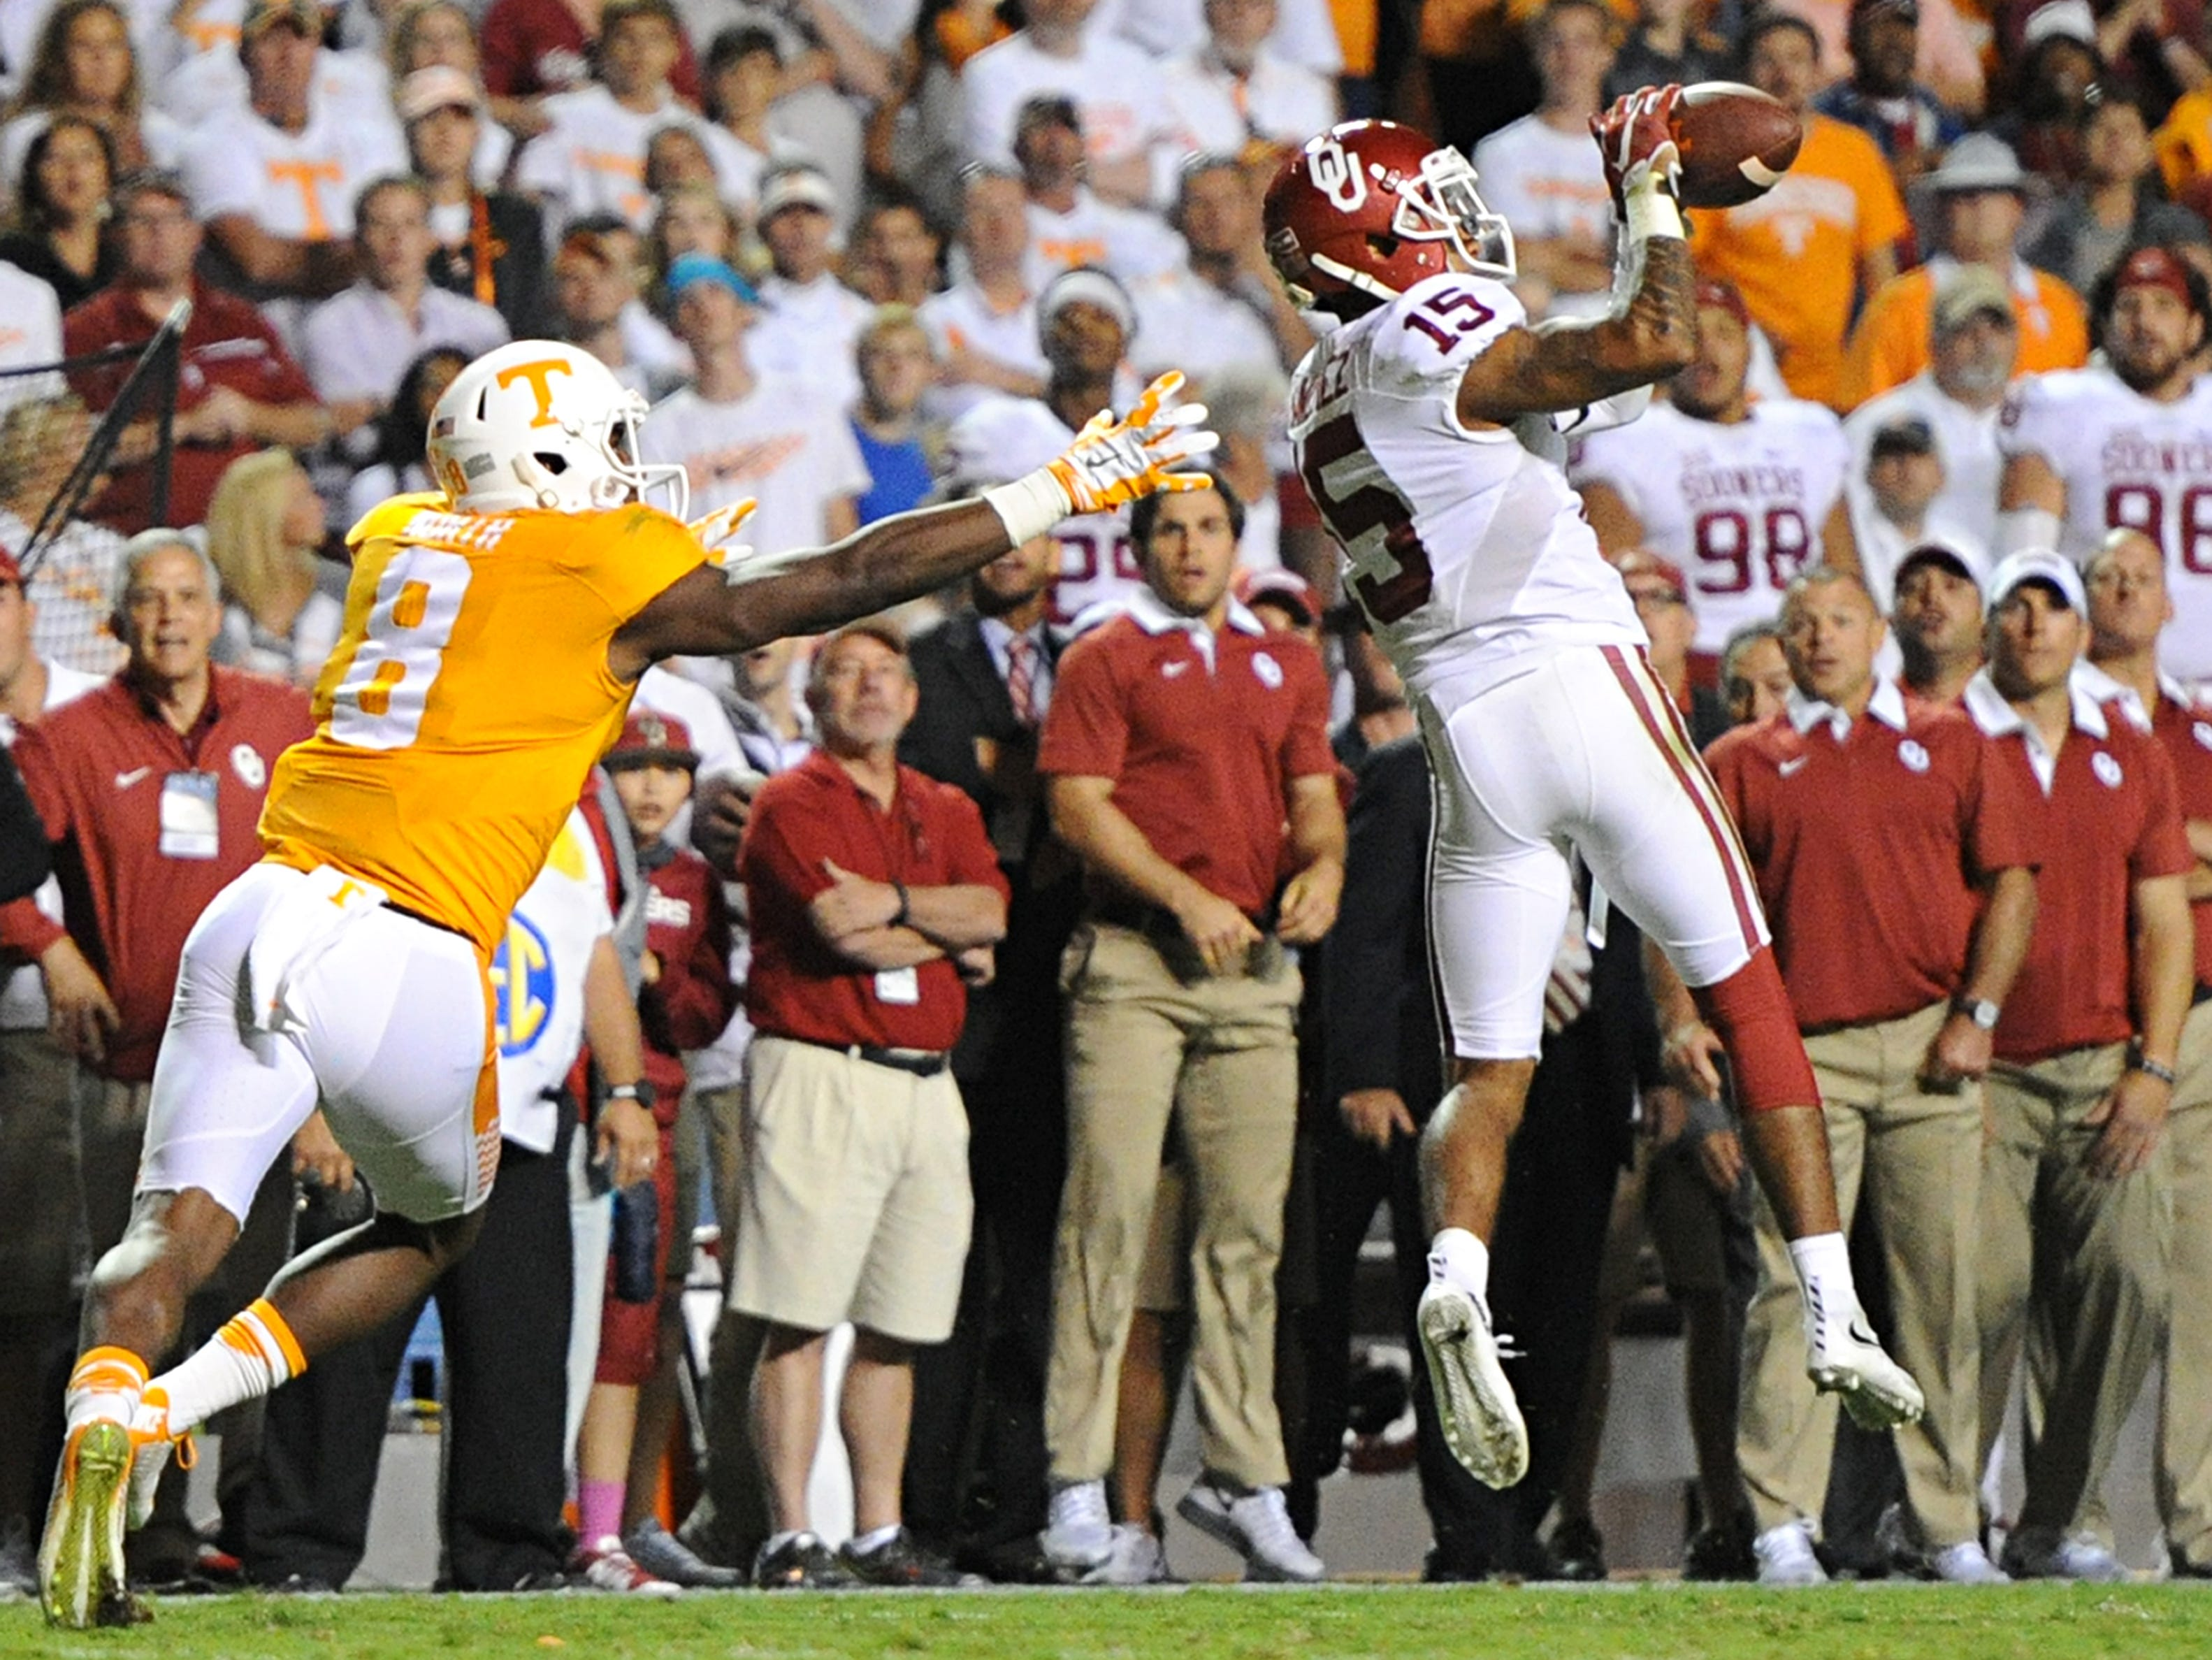 Oklahoma cornerback Zack Sanchez (15) intercepts a pass intended for Tennessee wide receiver Marquez North (8) in the second overtime period to clinch Oklahoma's 31-24 victory over Tennessee at Neyland Stadium on Saturday, Sept. 12, 2015 in Knoxville, Tenn.